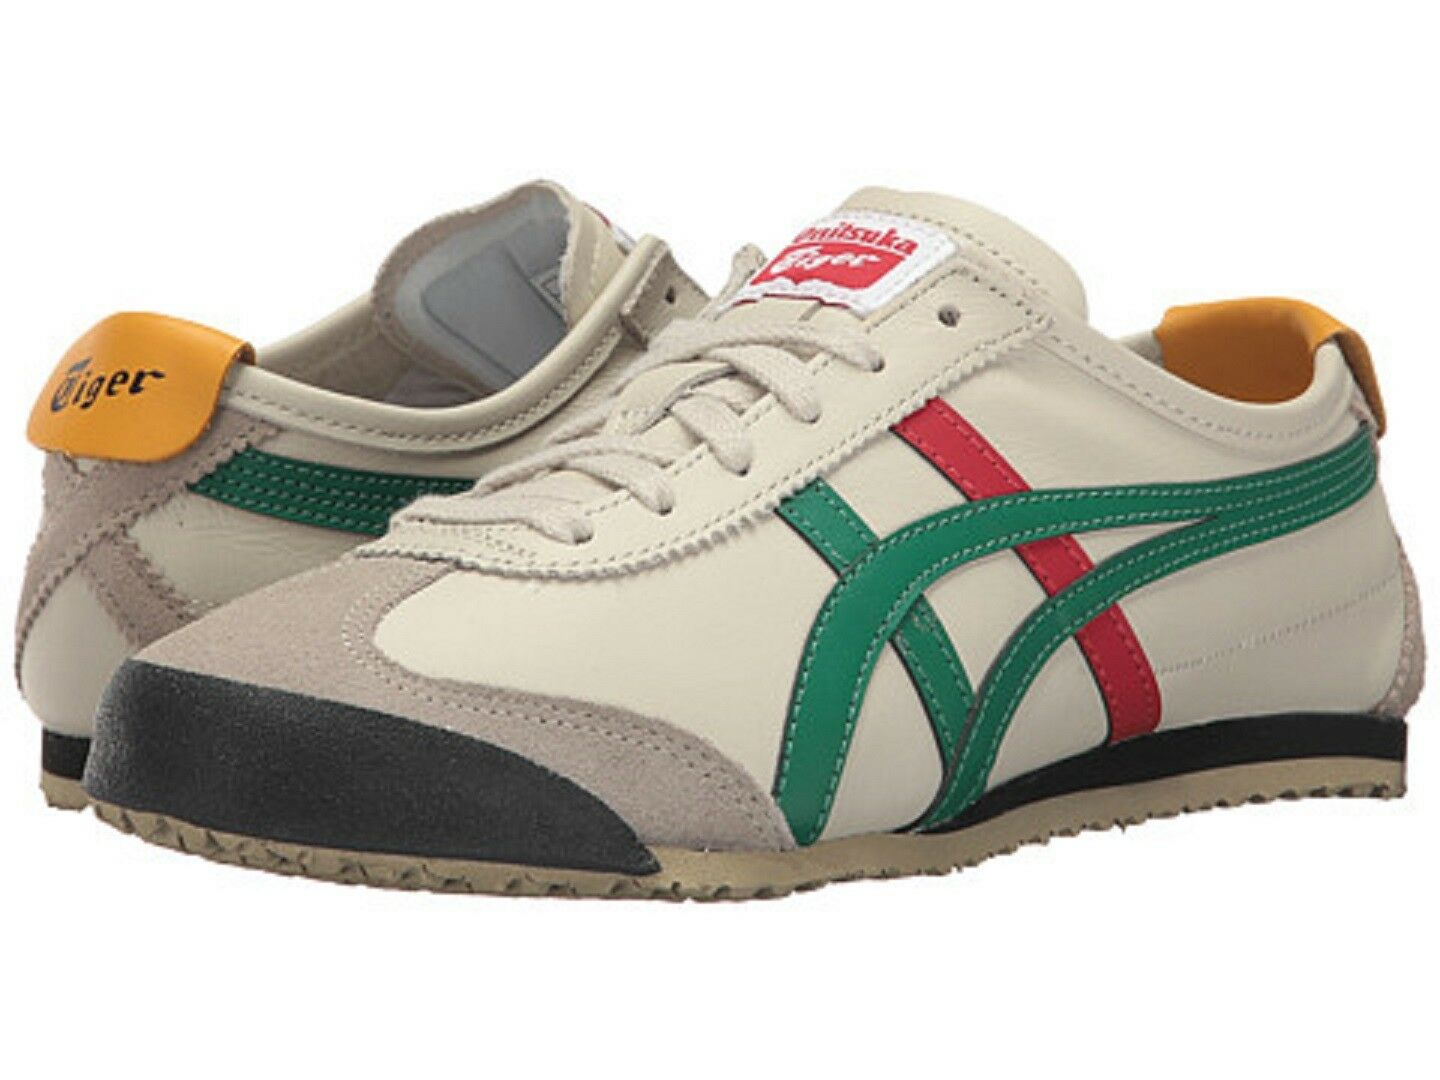 premium selection c978e 707f0 ONITSUKA TIGER DL408.1684 MEXICO 66 Mn's (M) Birch/Green Leather Lifestyle  Shoes